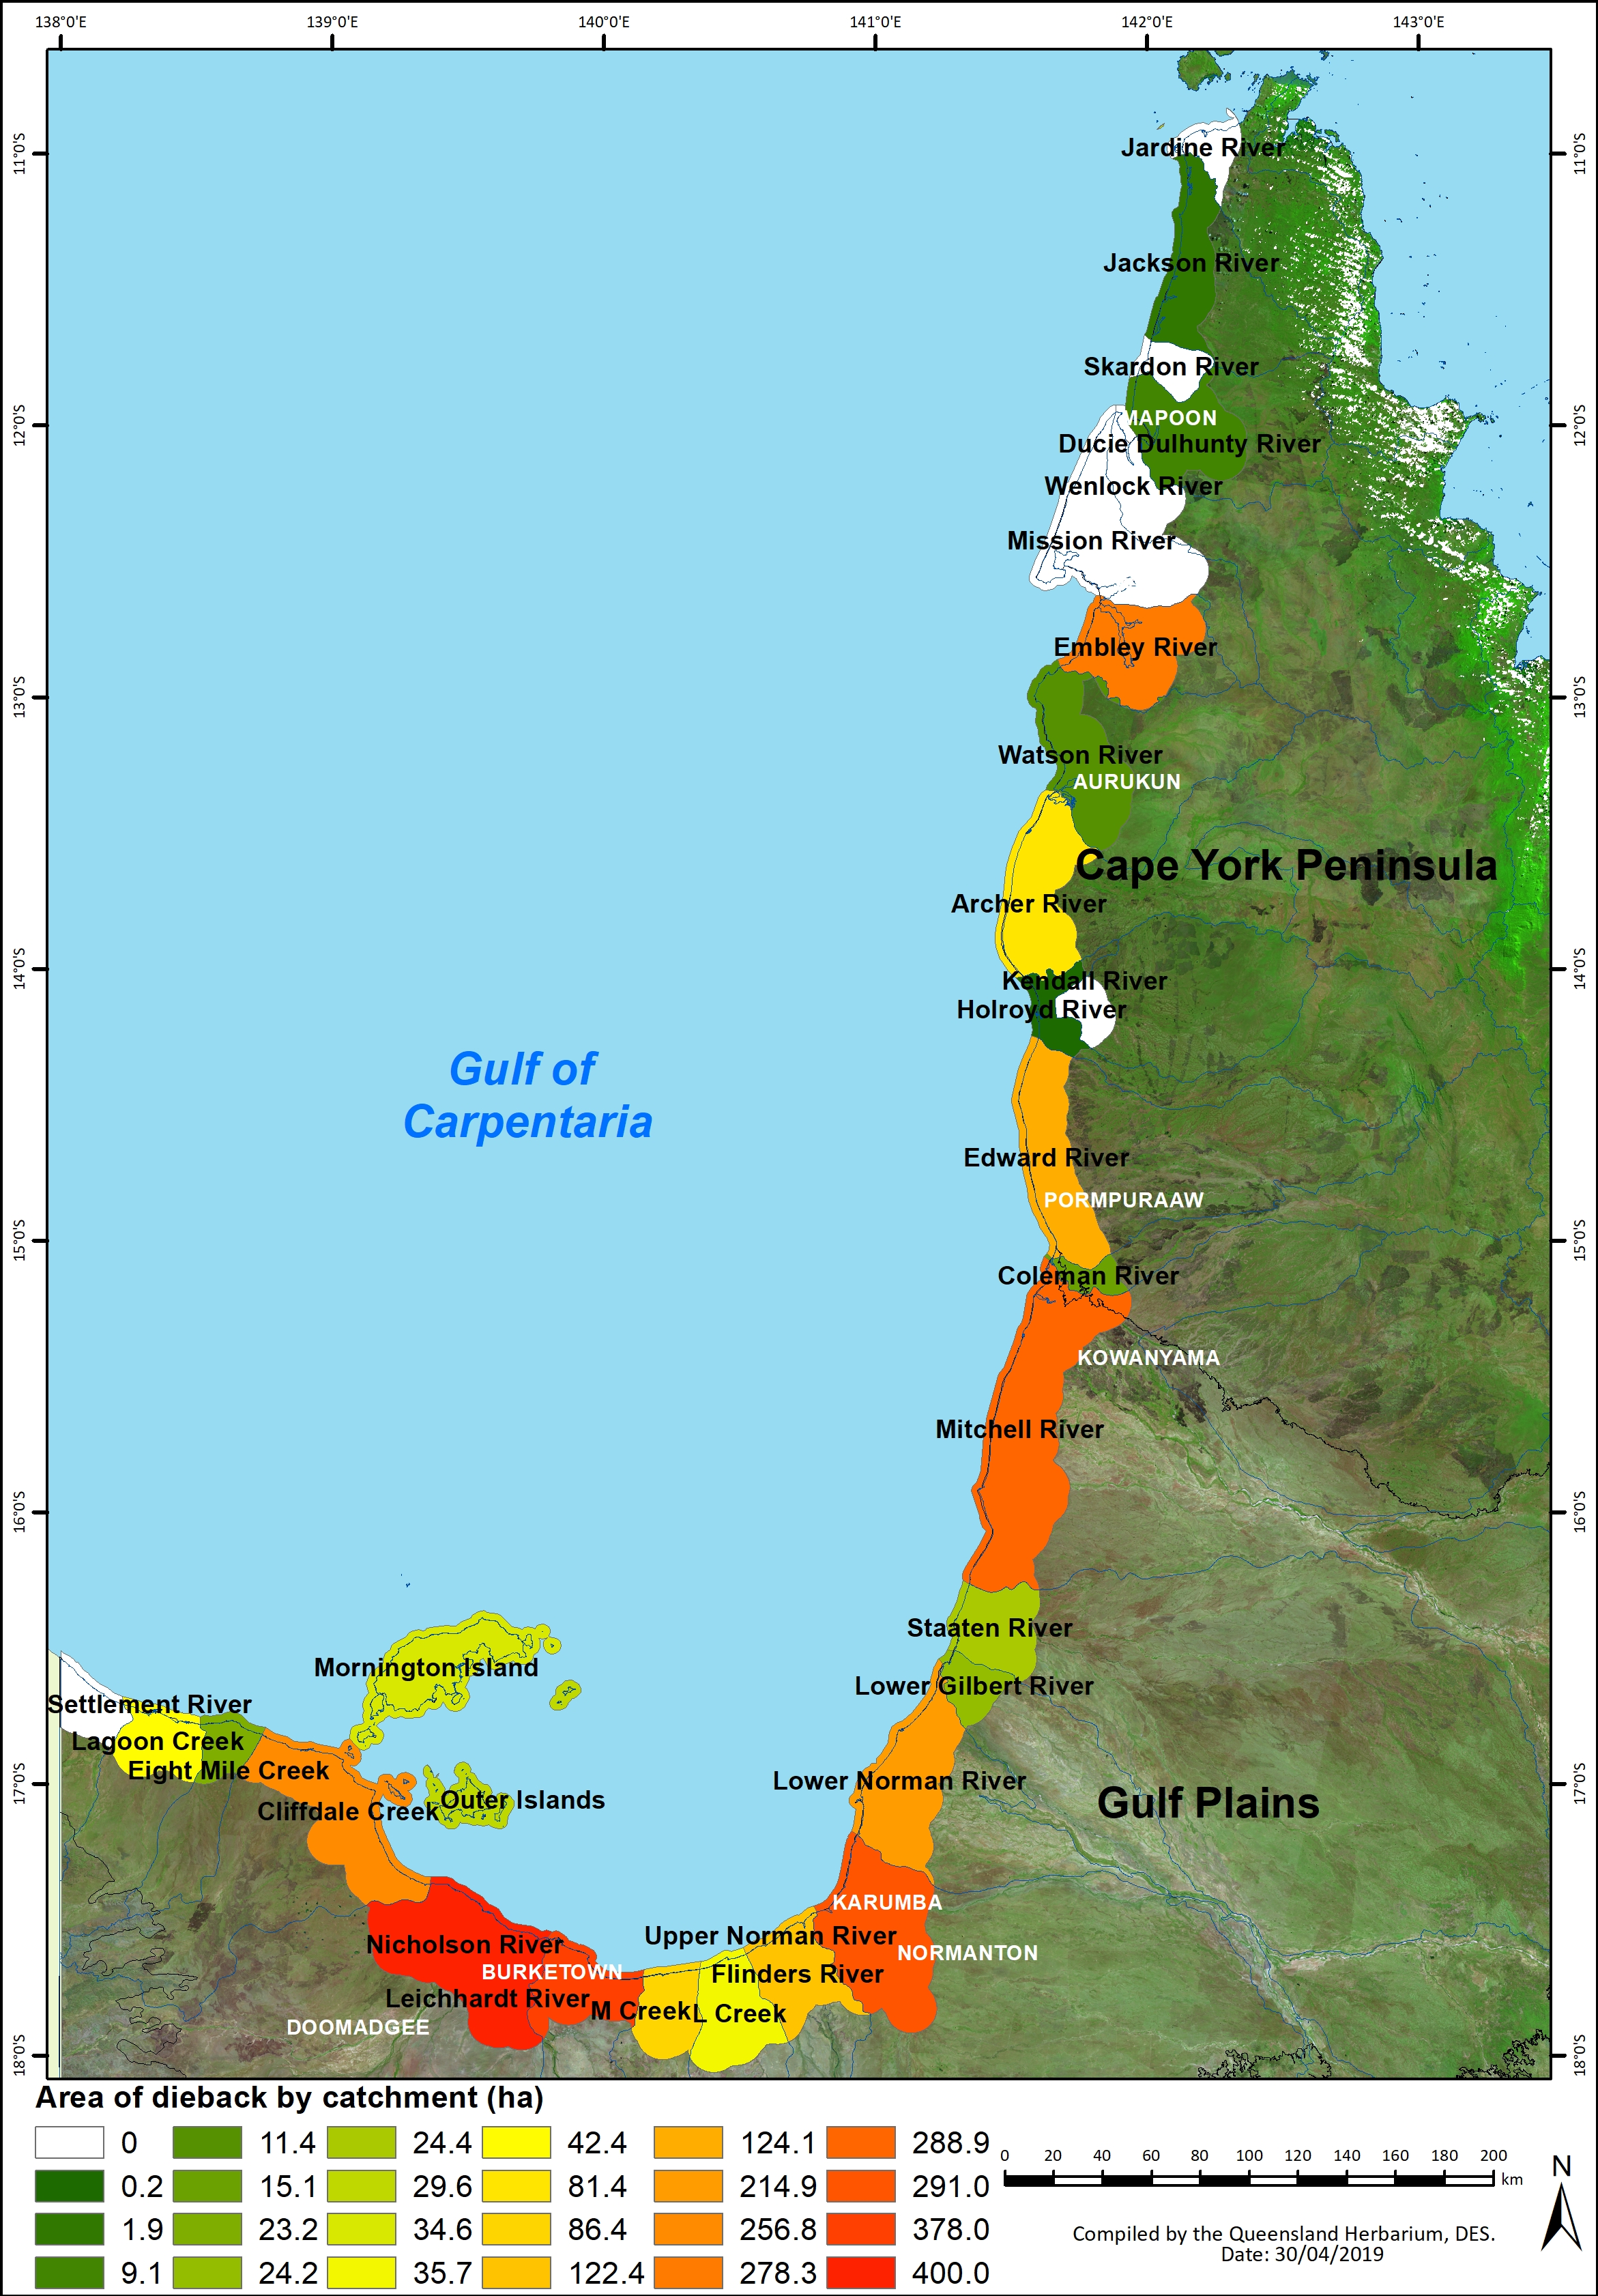 Catchments in the Gulf of Carpentaria assessed for dieback